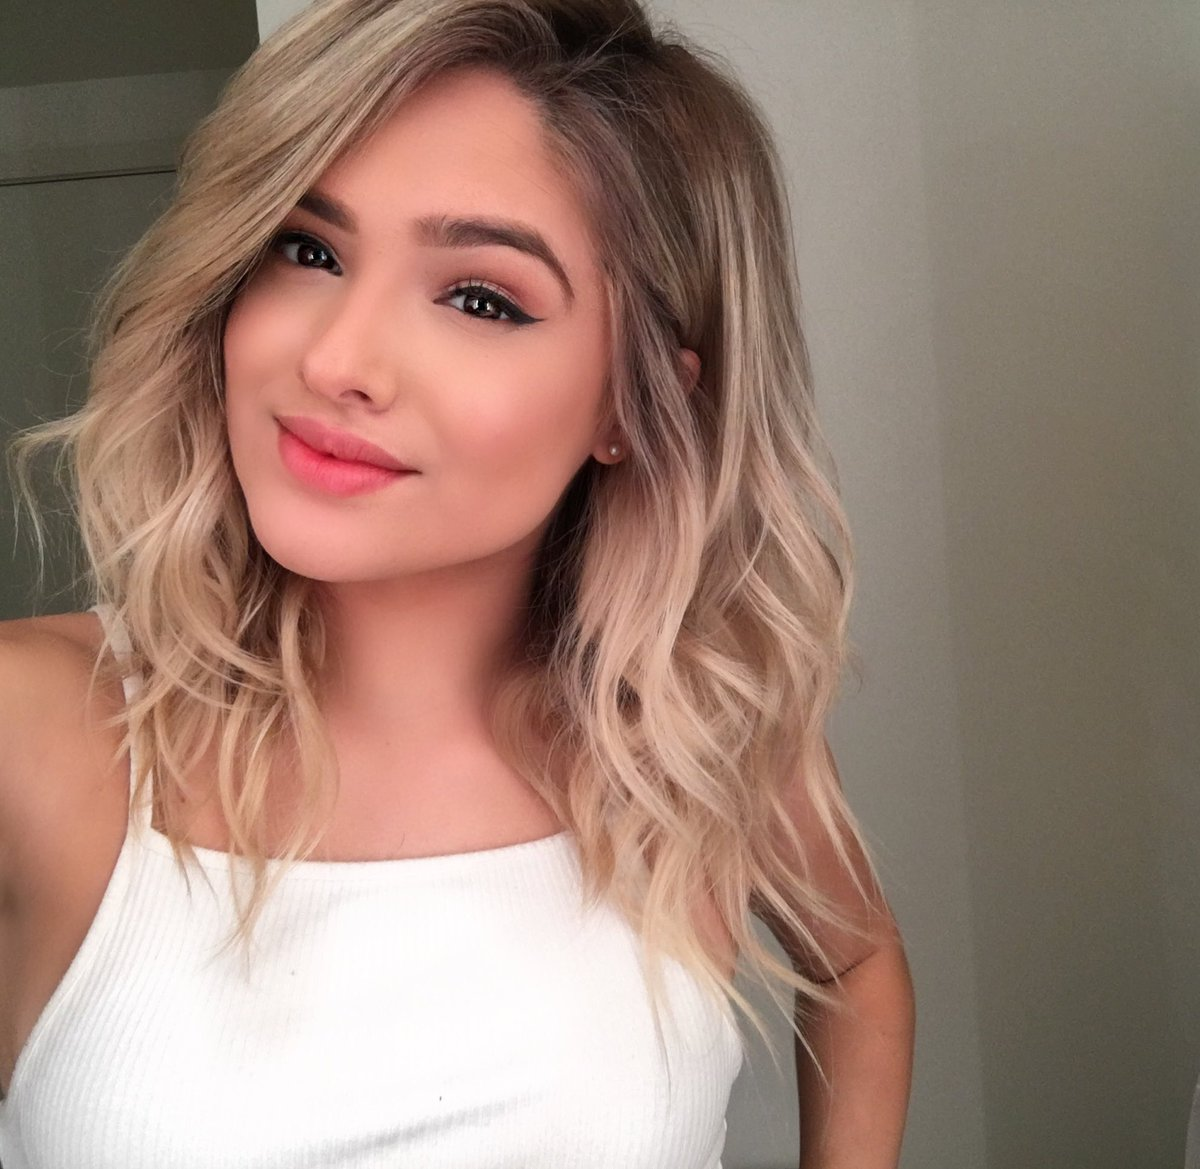 Chachi Gonzales nude photos 2019